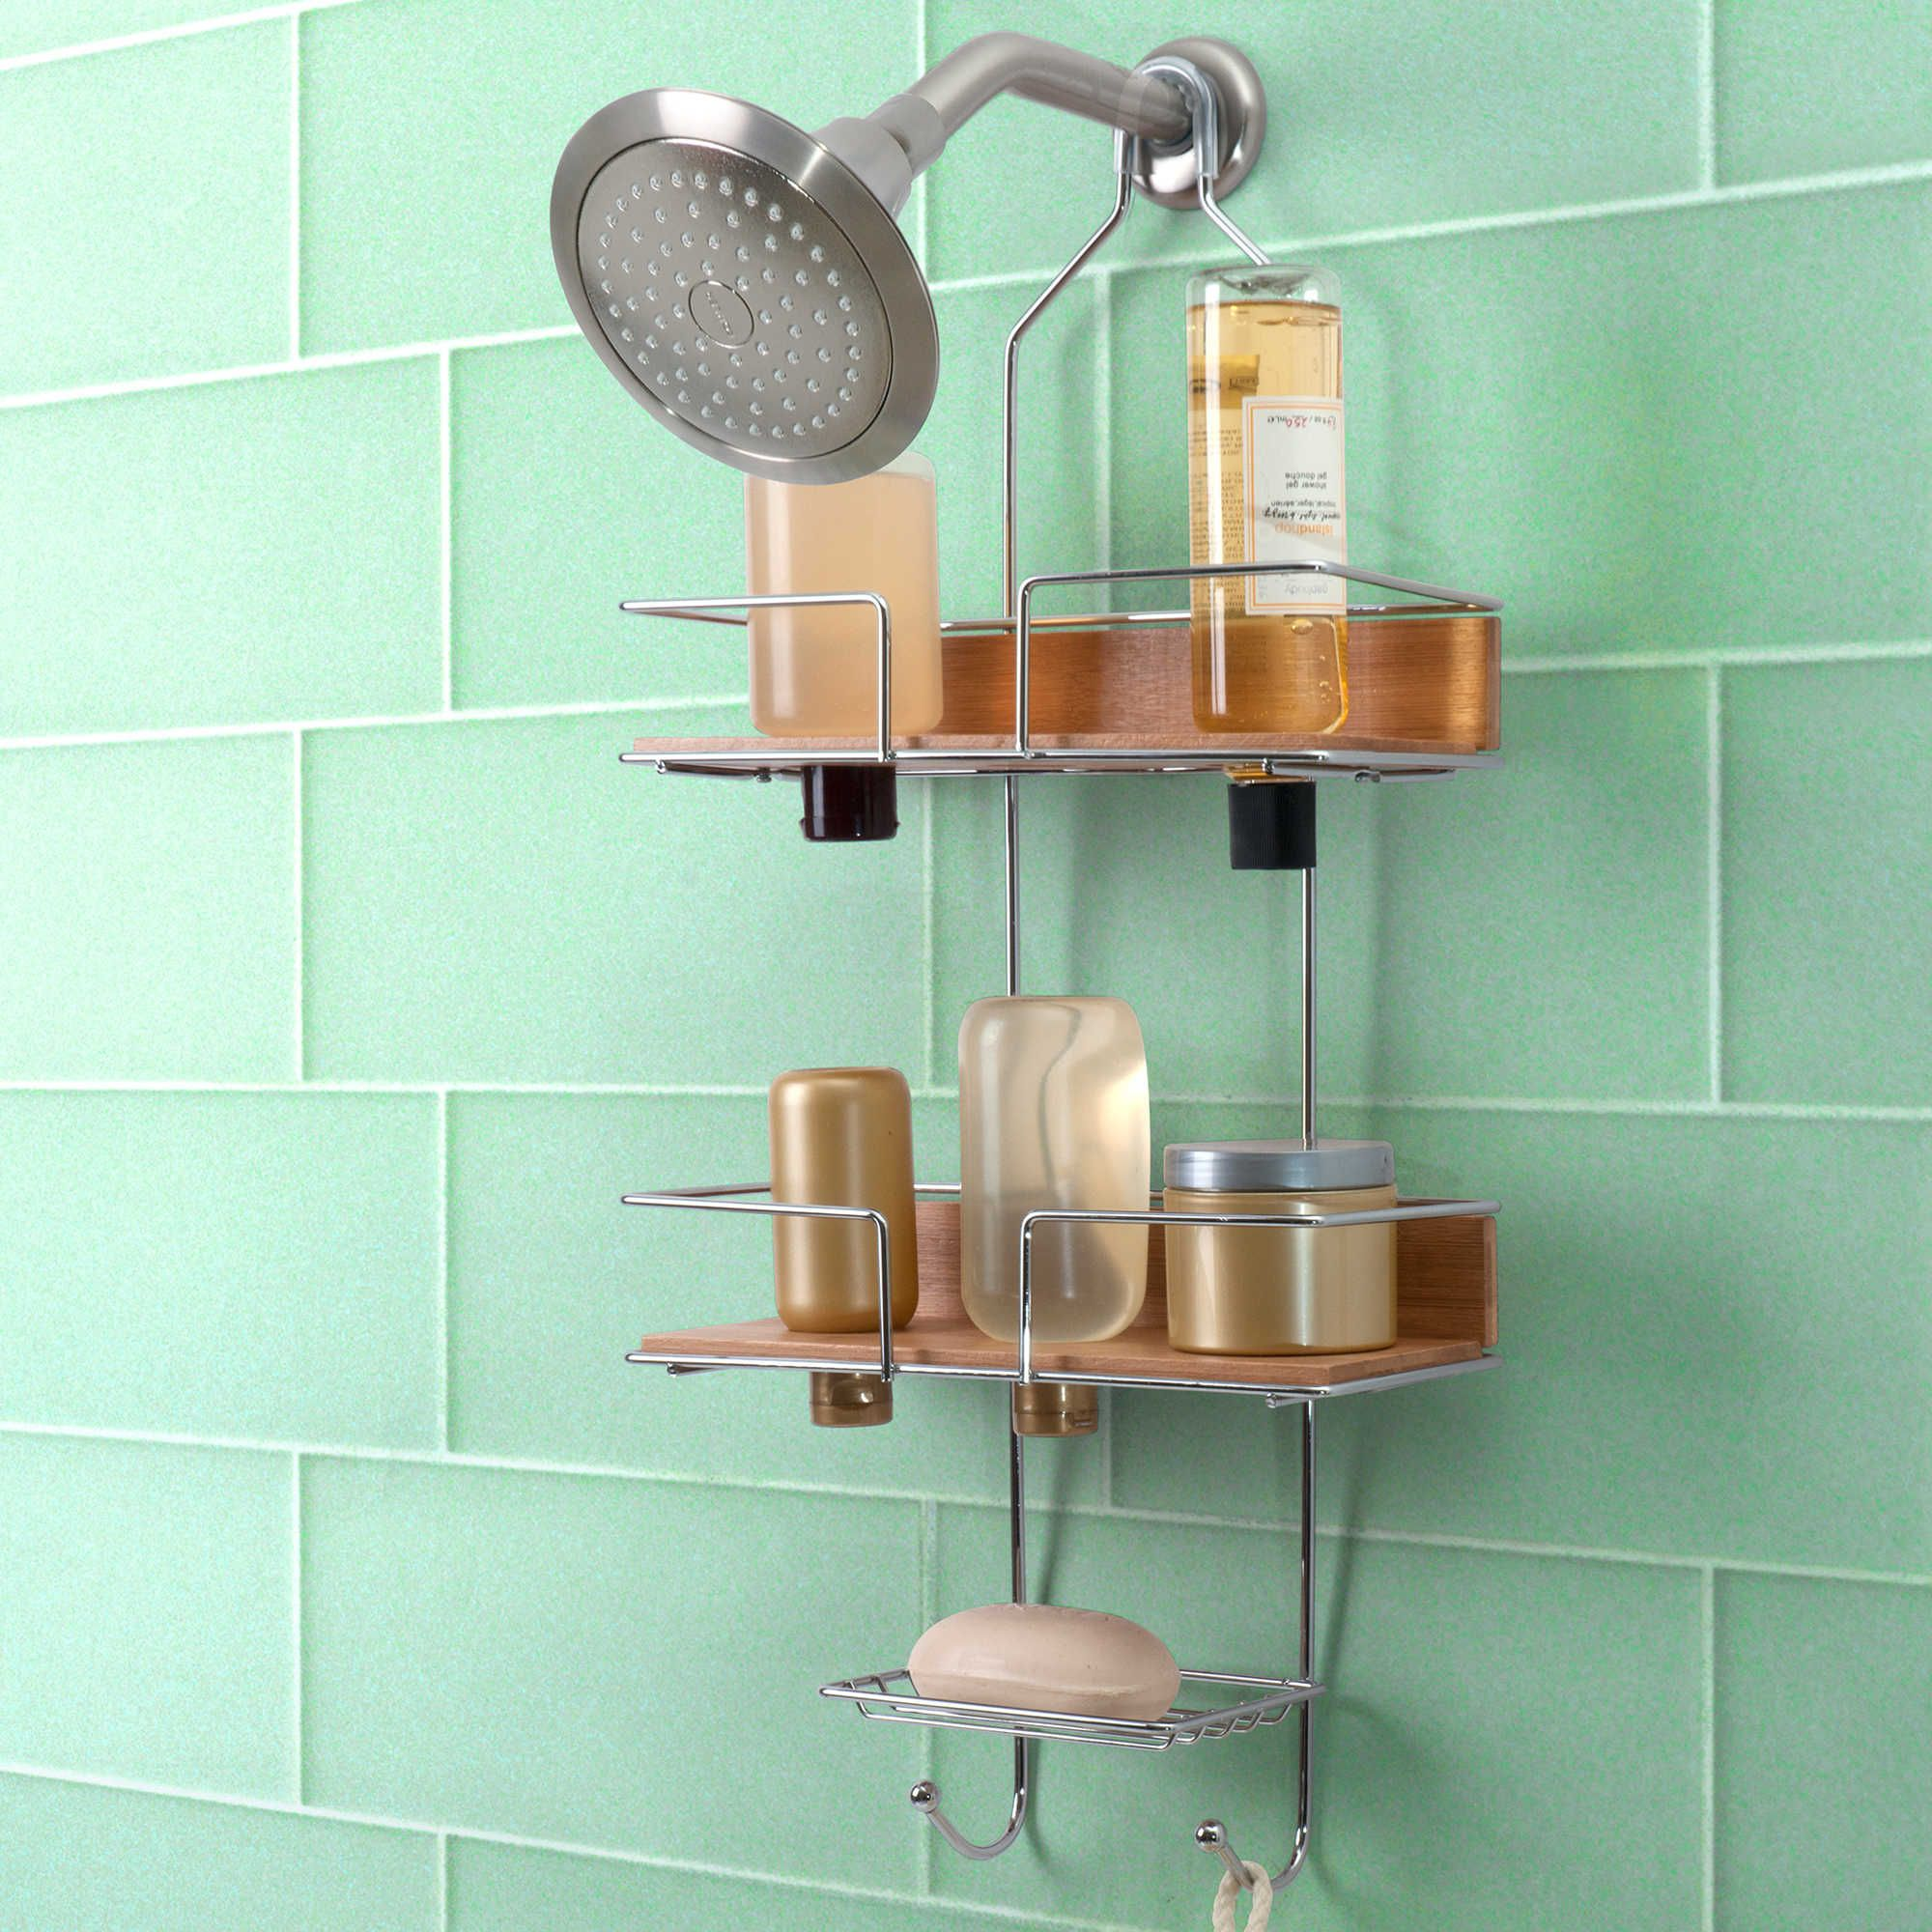 Totally Bath Sleek Bamboo Shower Caddy | Apartment | Pinterest ...